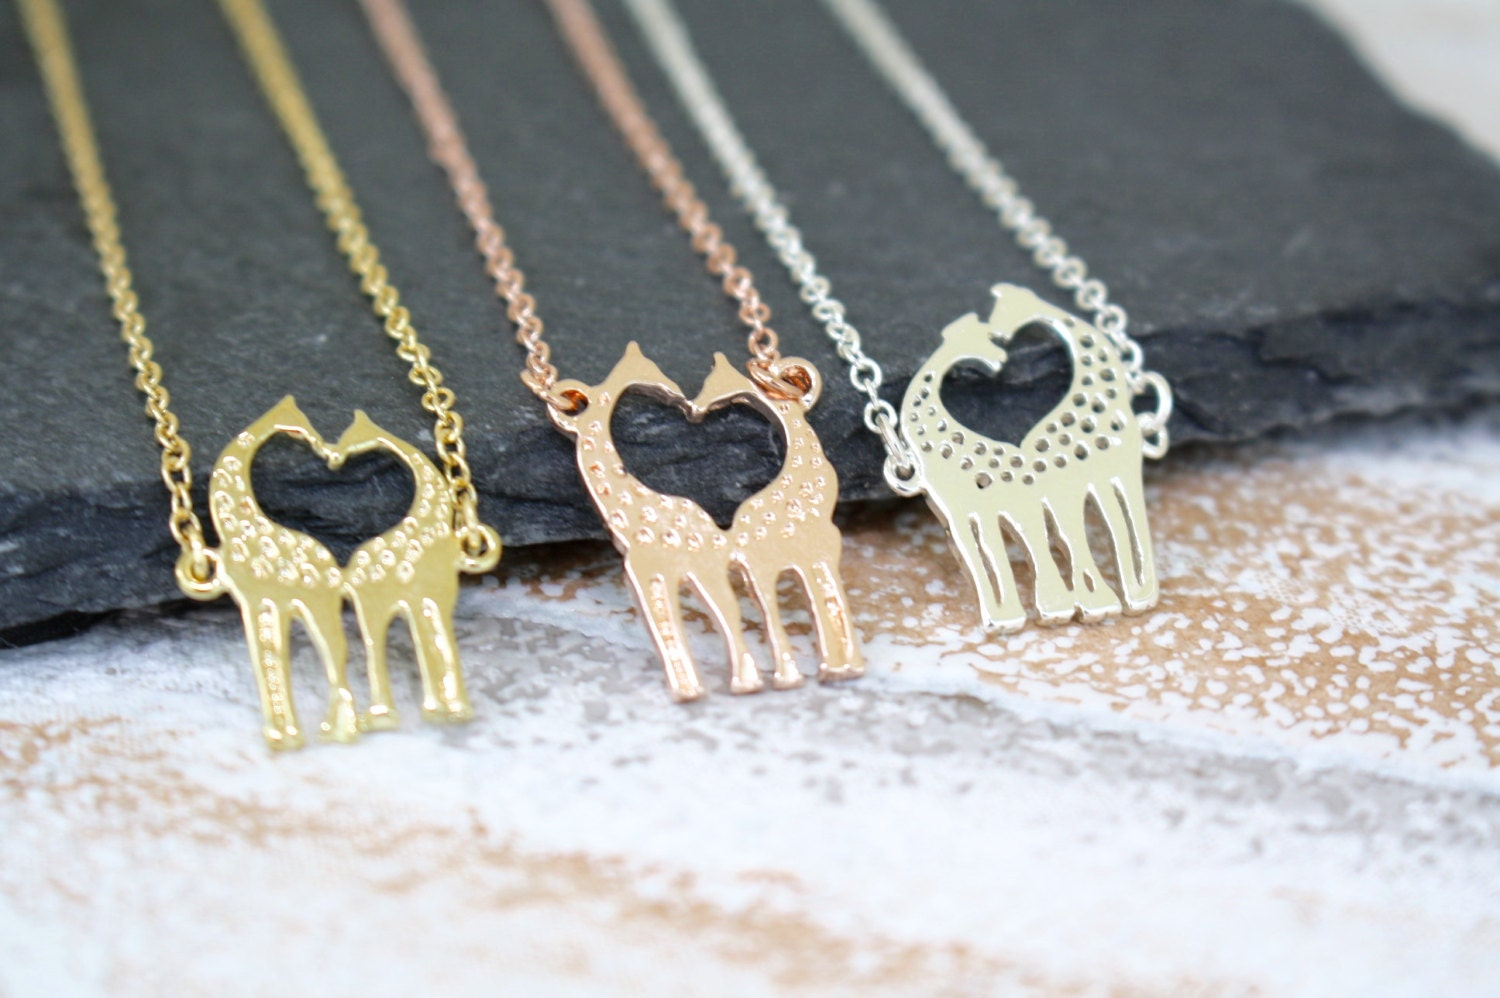 Giraffe Necklace Rose Gold Necklace Animal Jewellery Wildlife Jewellery Animal Lover Jewellery Safari Necklace Giraffe Jewelry